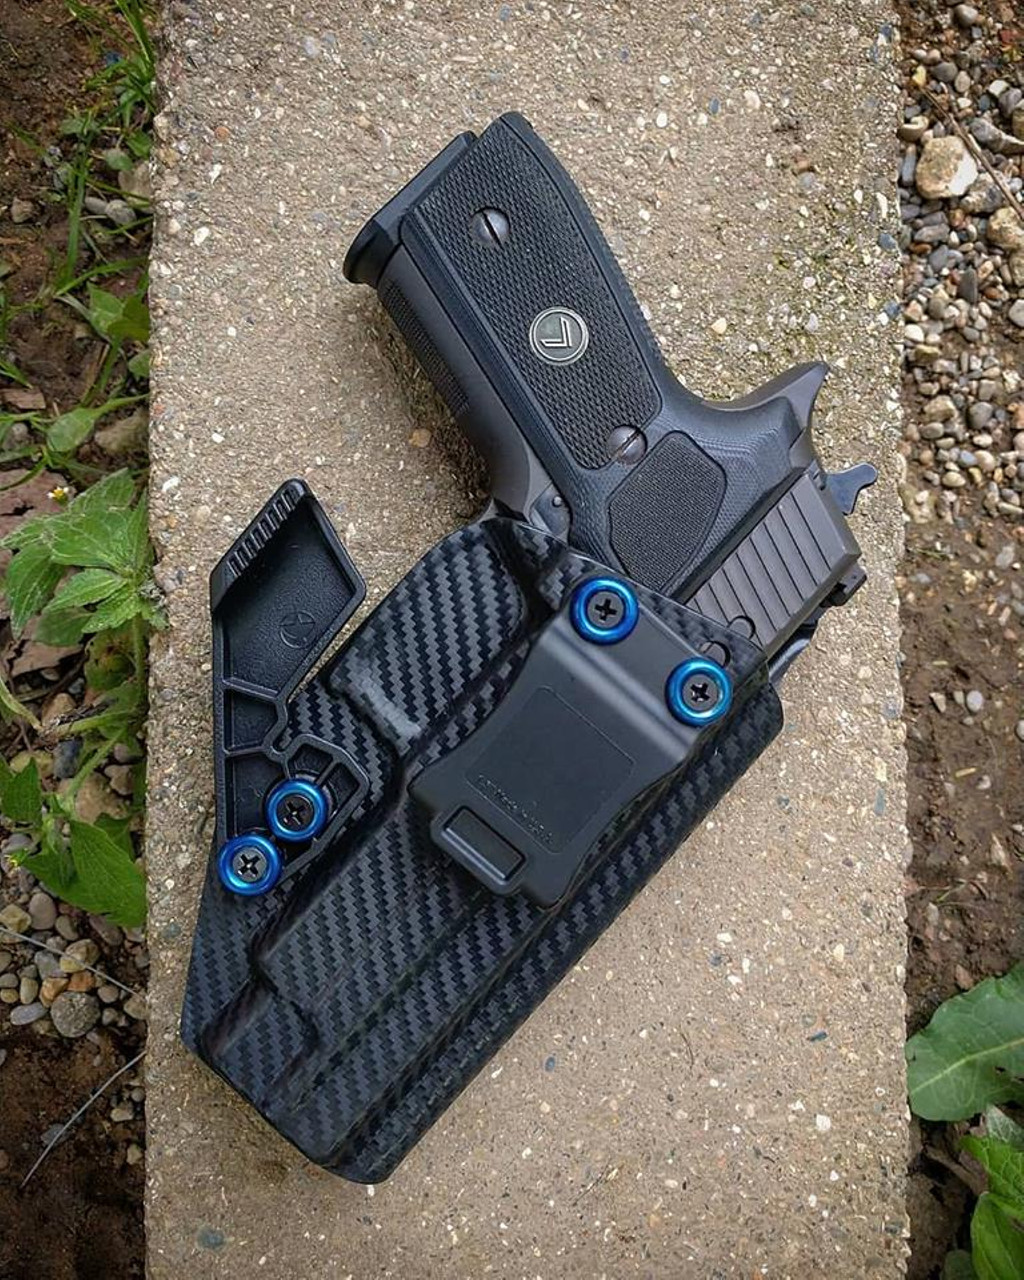 Sig P226 Legion Appendix Carry Kydex Holster